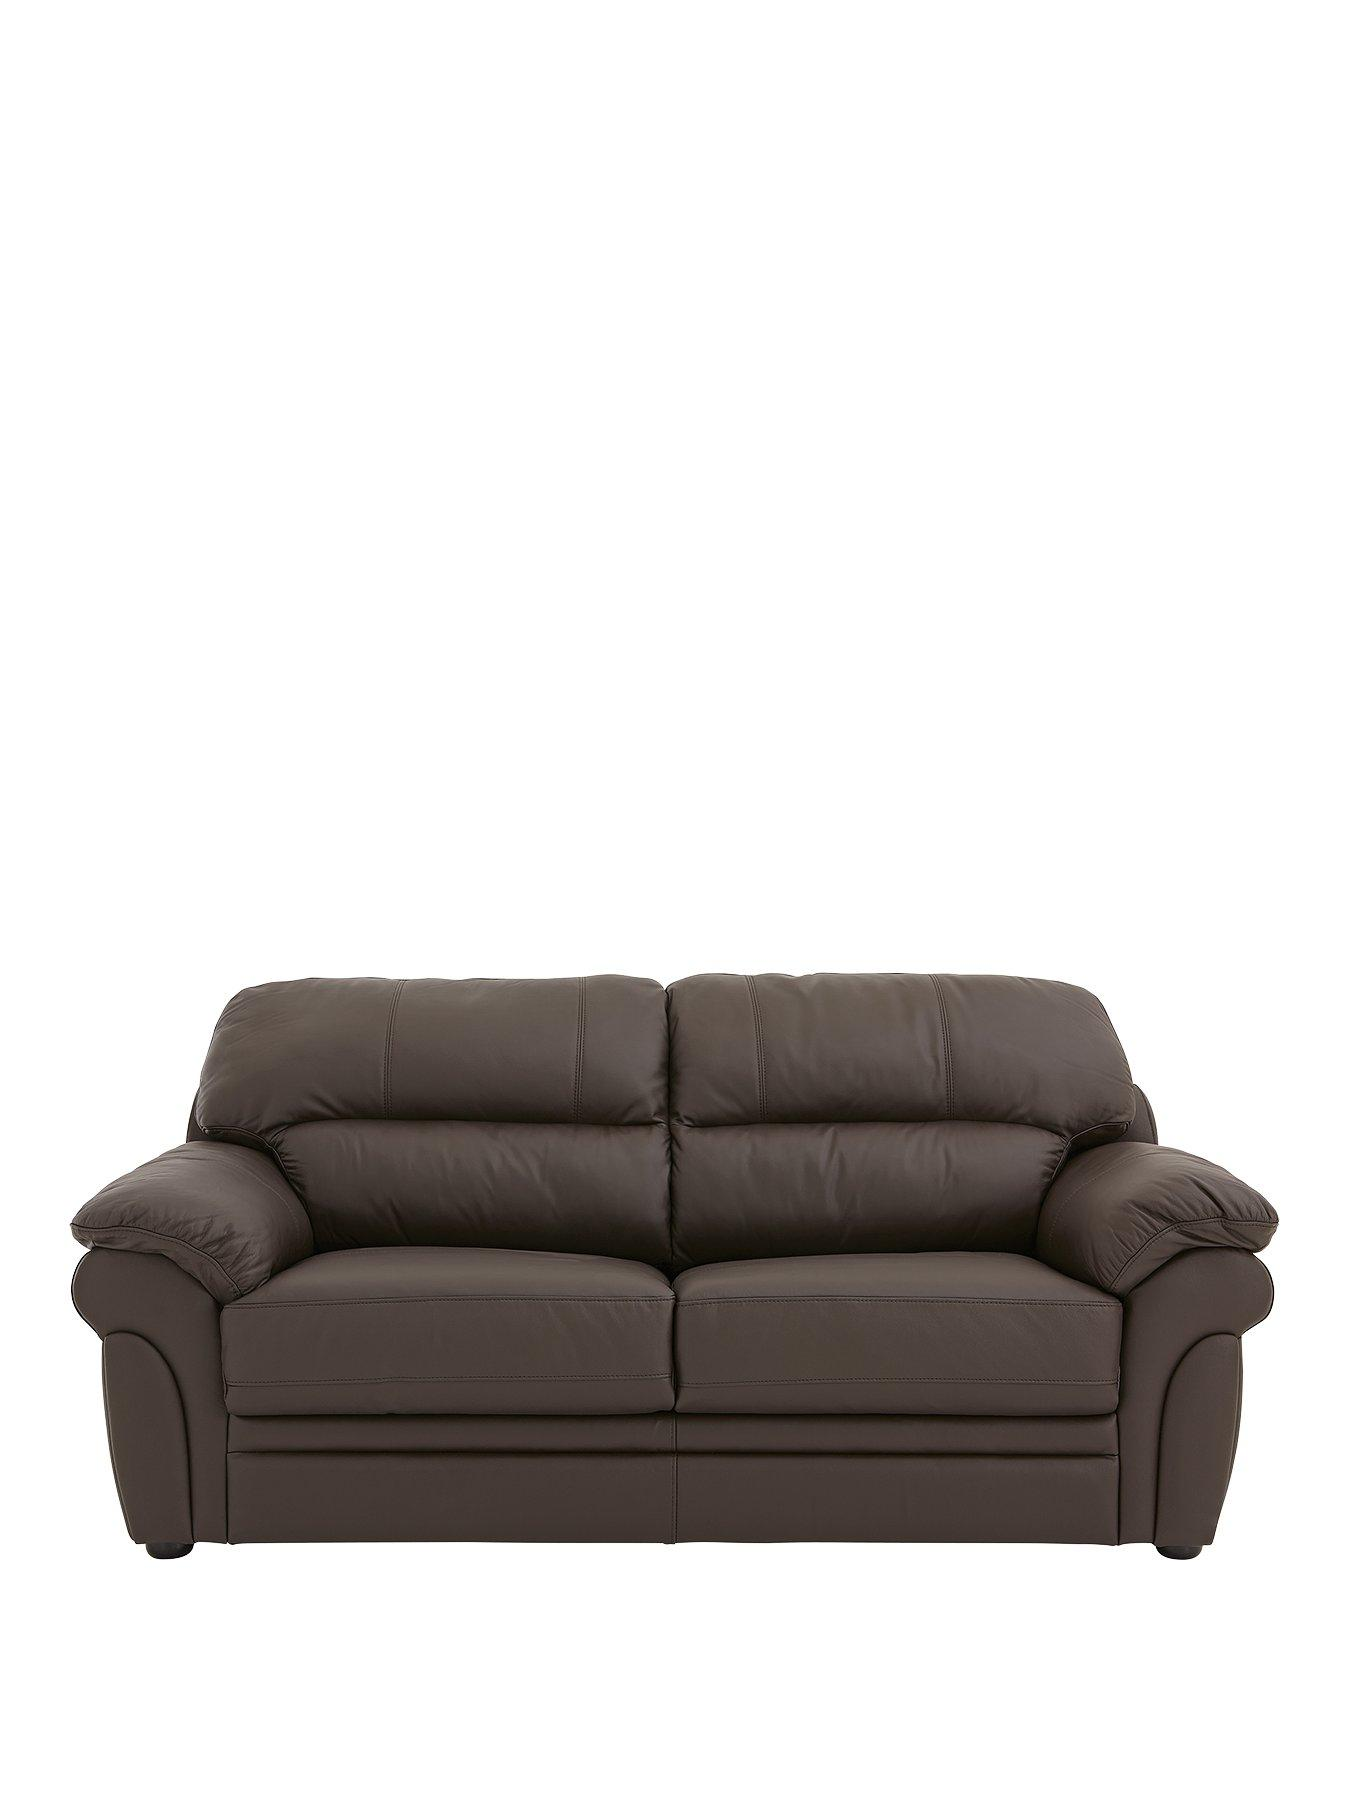 sofas quick delivery uk n joy sofa save on fast beds home garden www very co portland leather bed